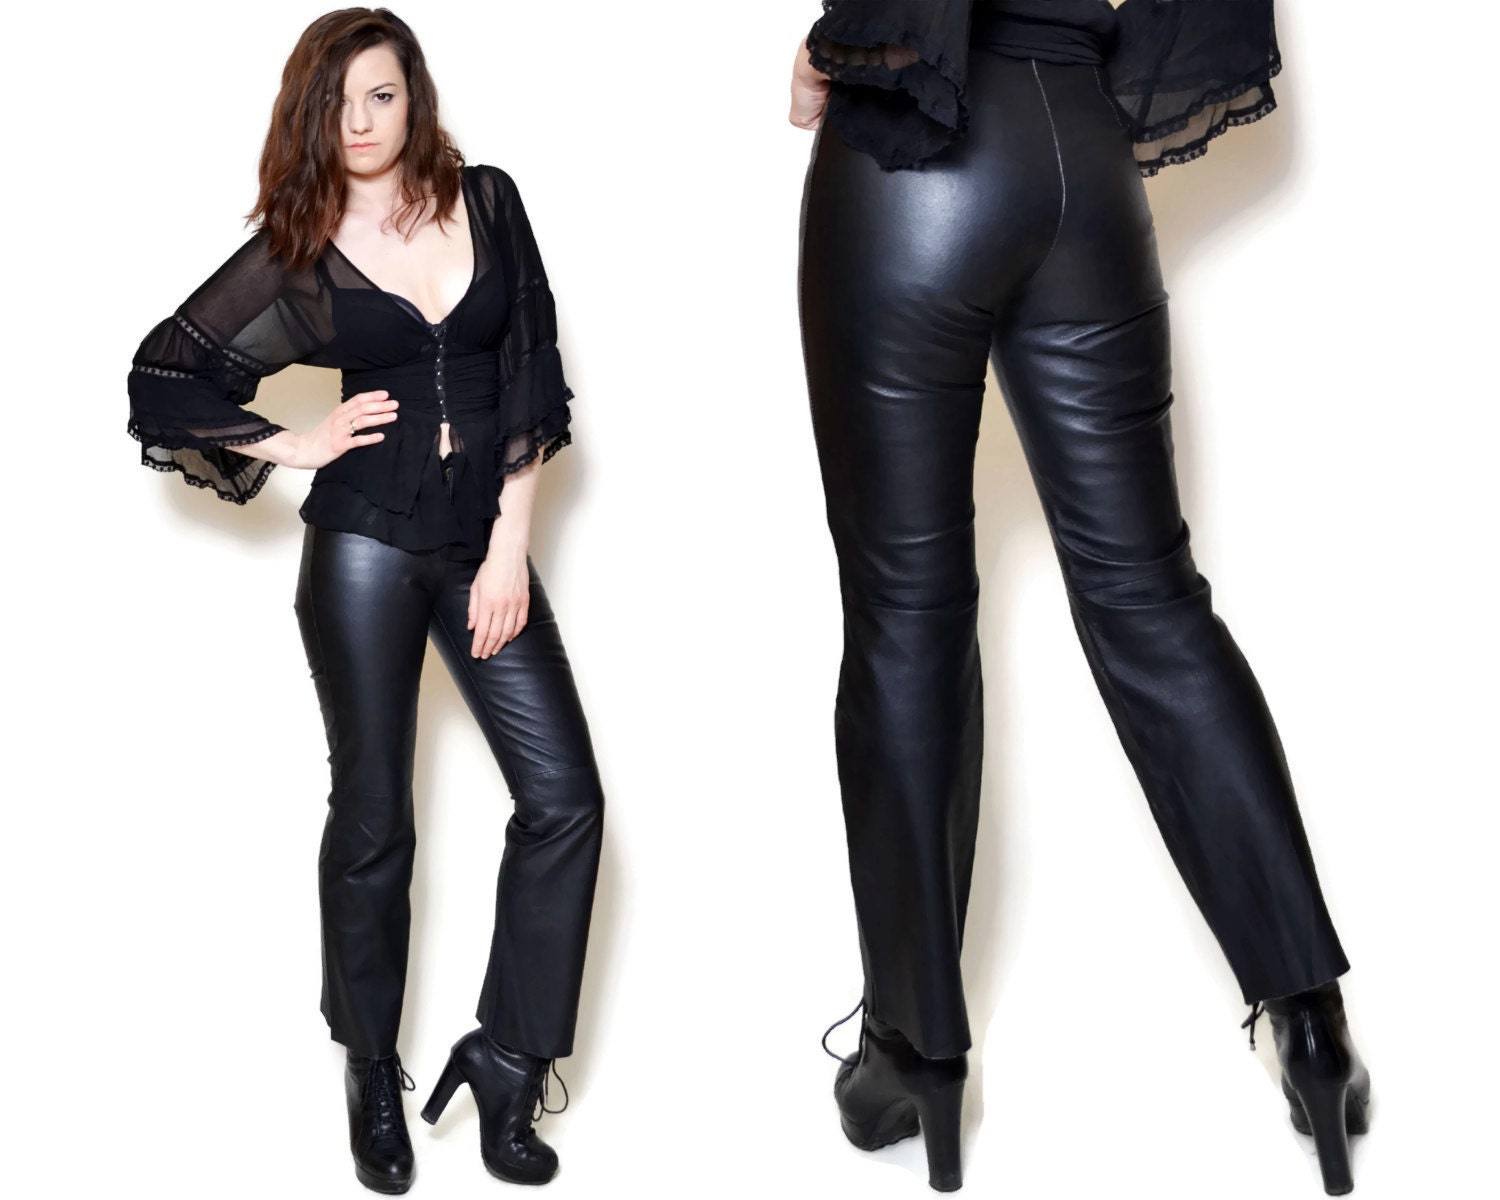 Women Leather Pants from the best designers on YOOX. Discover our wide array of products and shop online: easy, quick returns and secure payment!